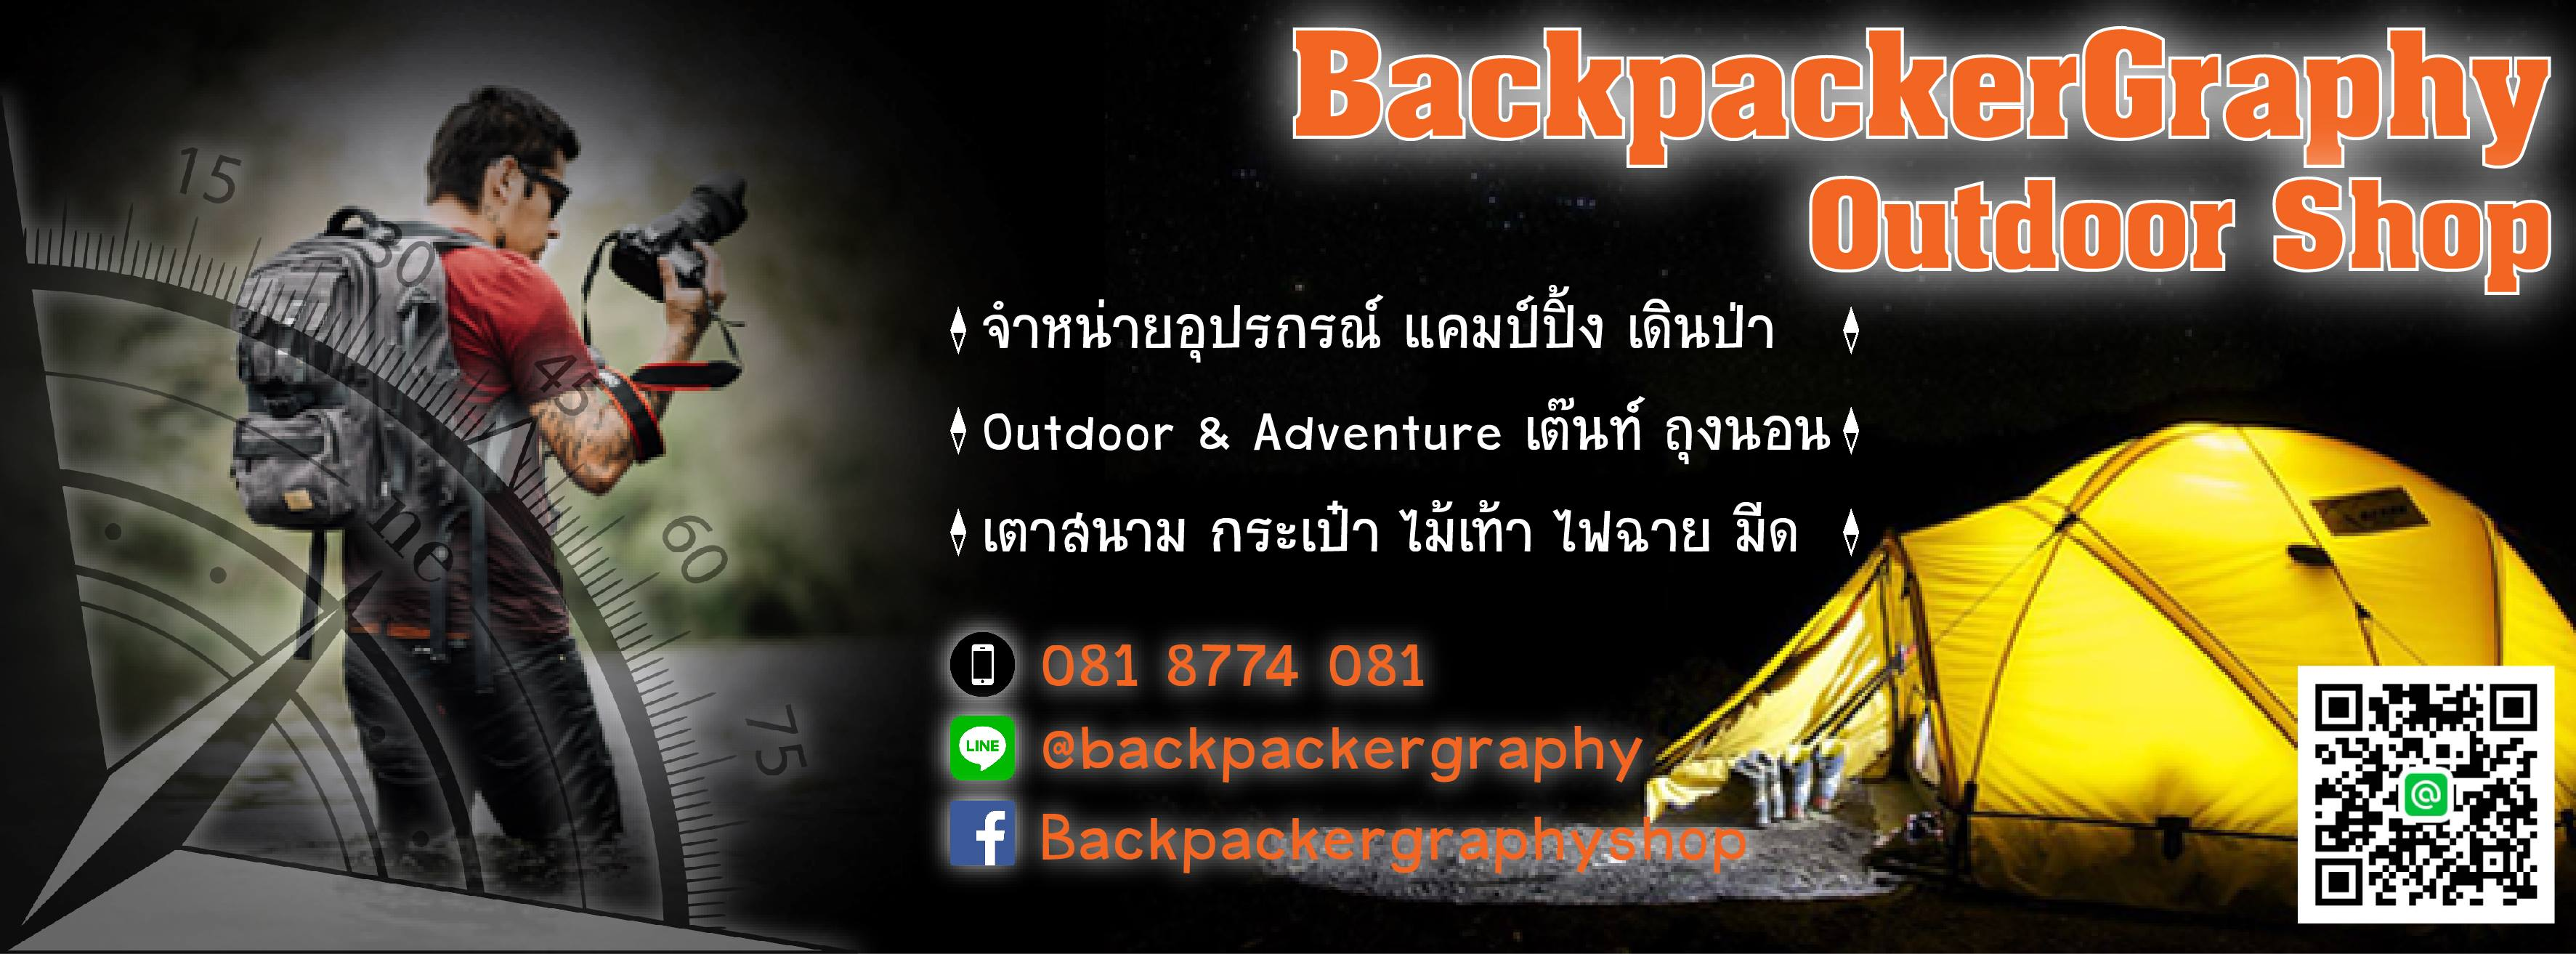 BackpackerGraphy Shop